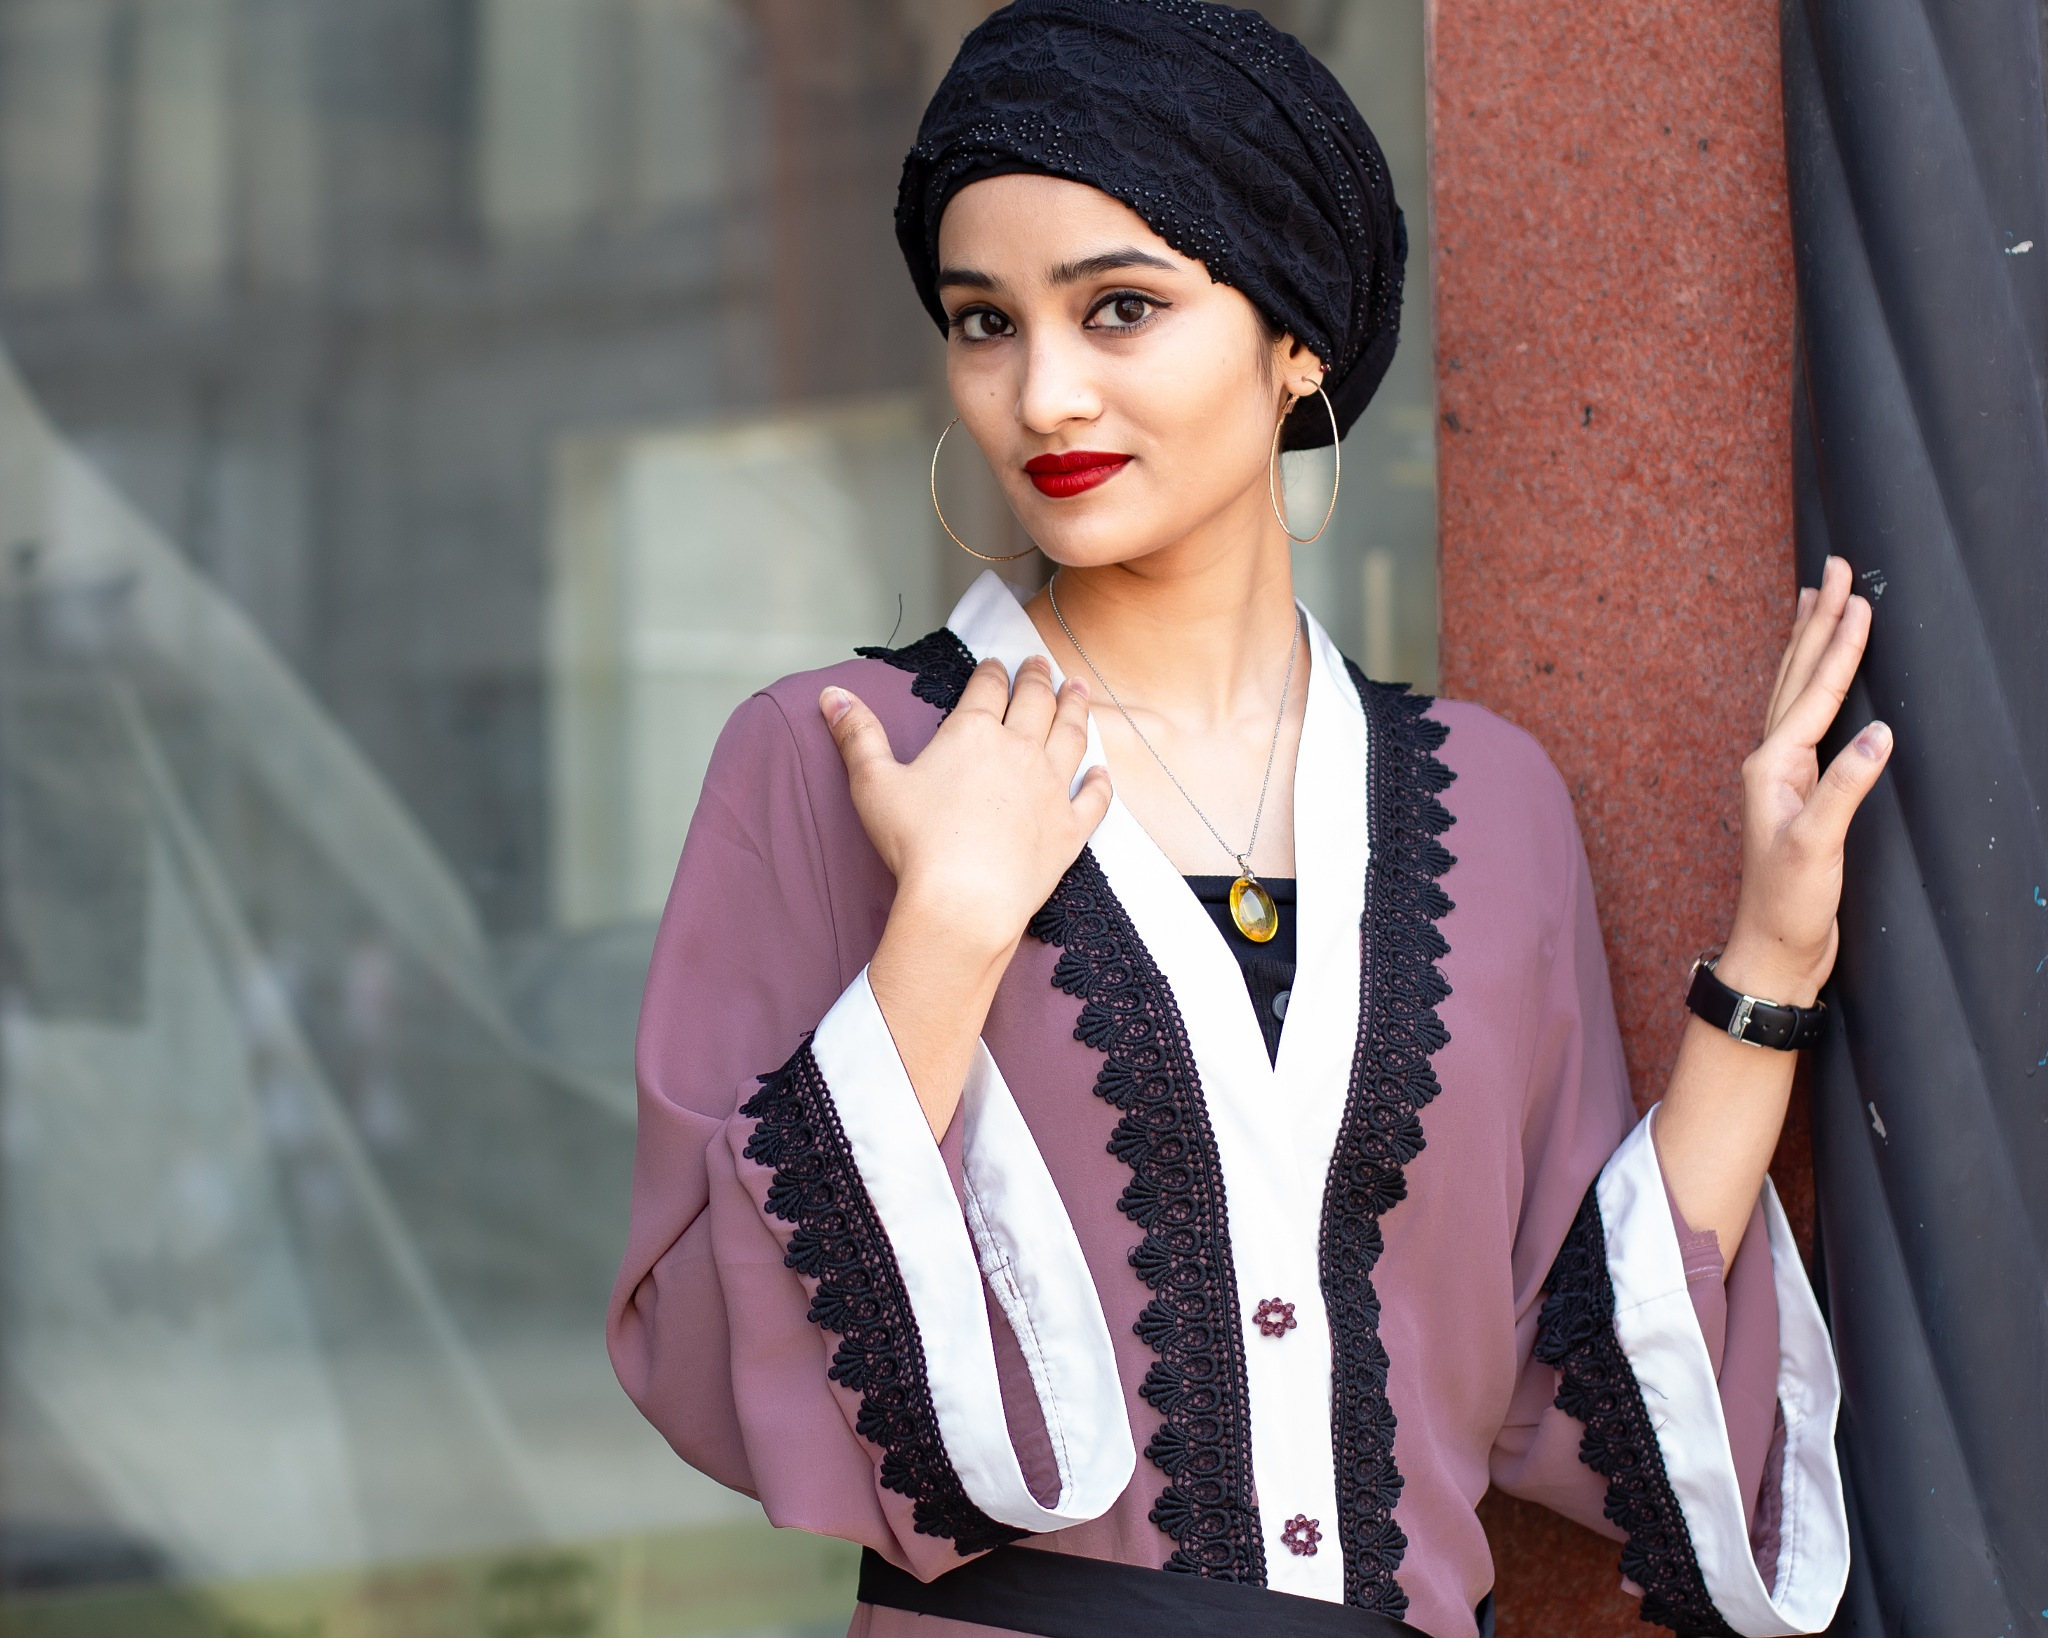 Photo in Fashion #girl #streetlife #fashion #lifestyle #beauty #indian #people #portrait